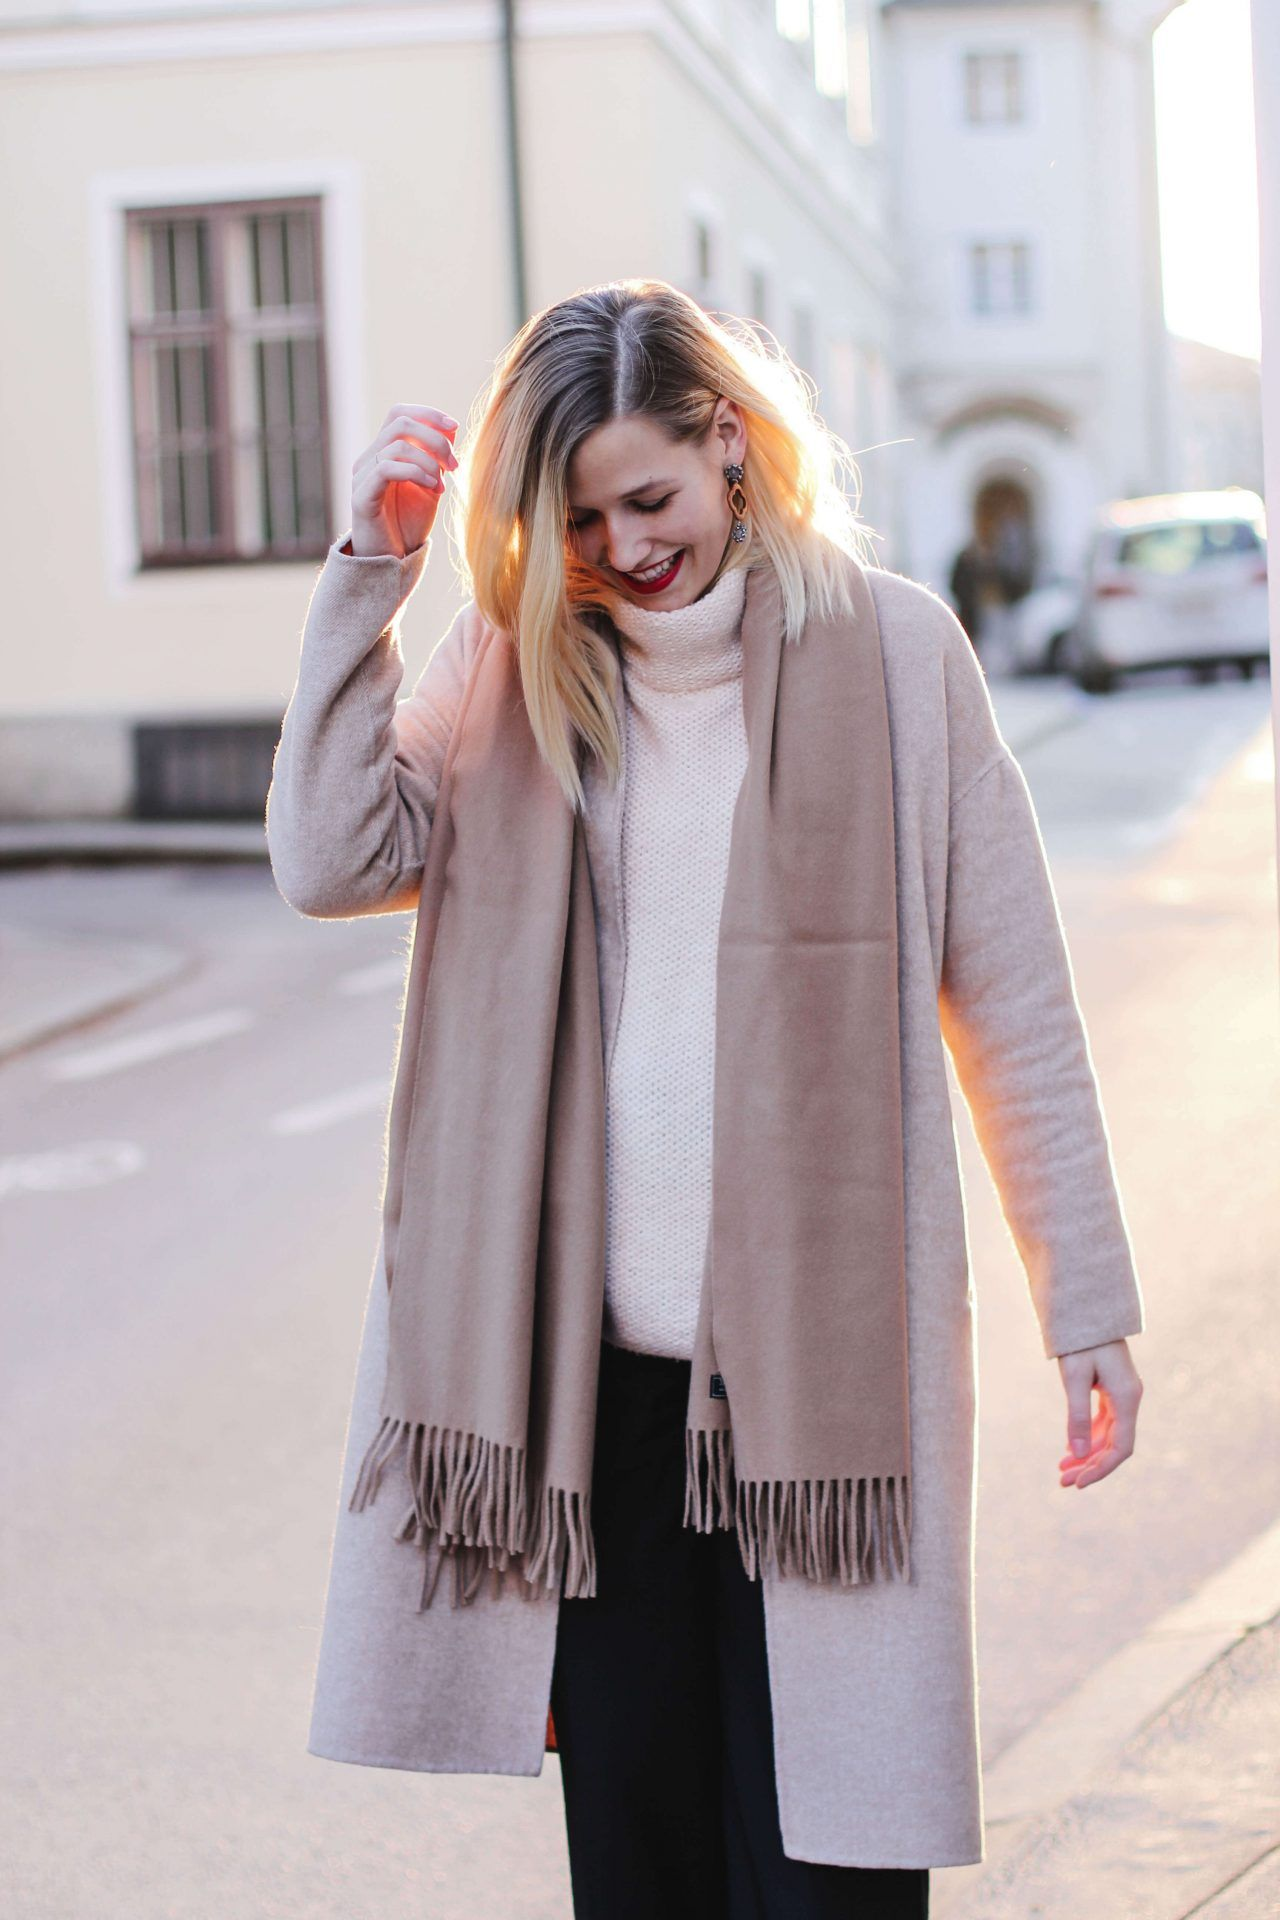 tifmys – Coat, culottes and turtleneck sweater: Zara | Scarf: Acne ...